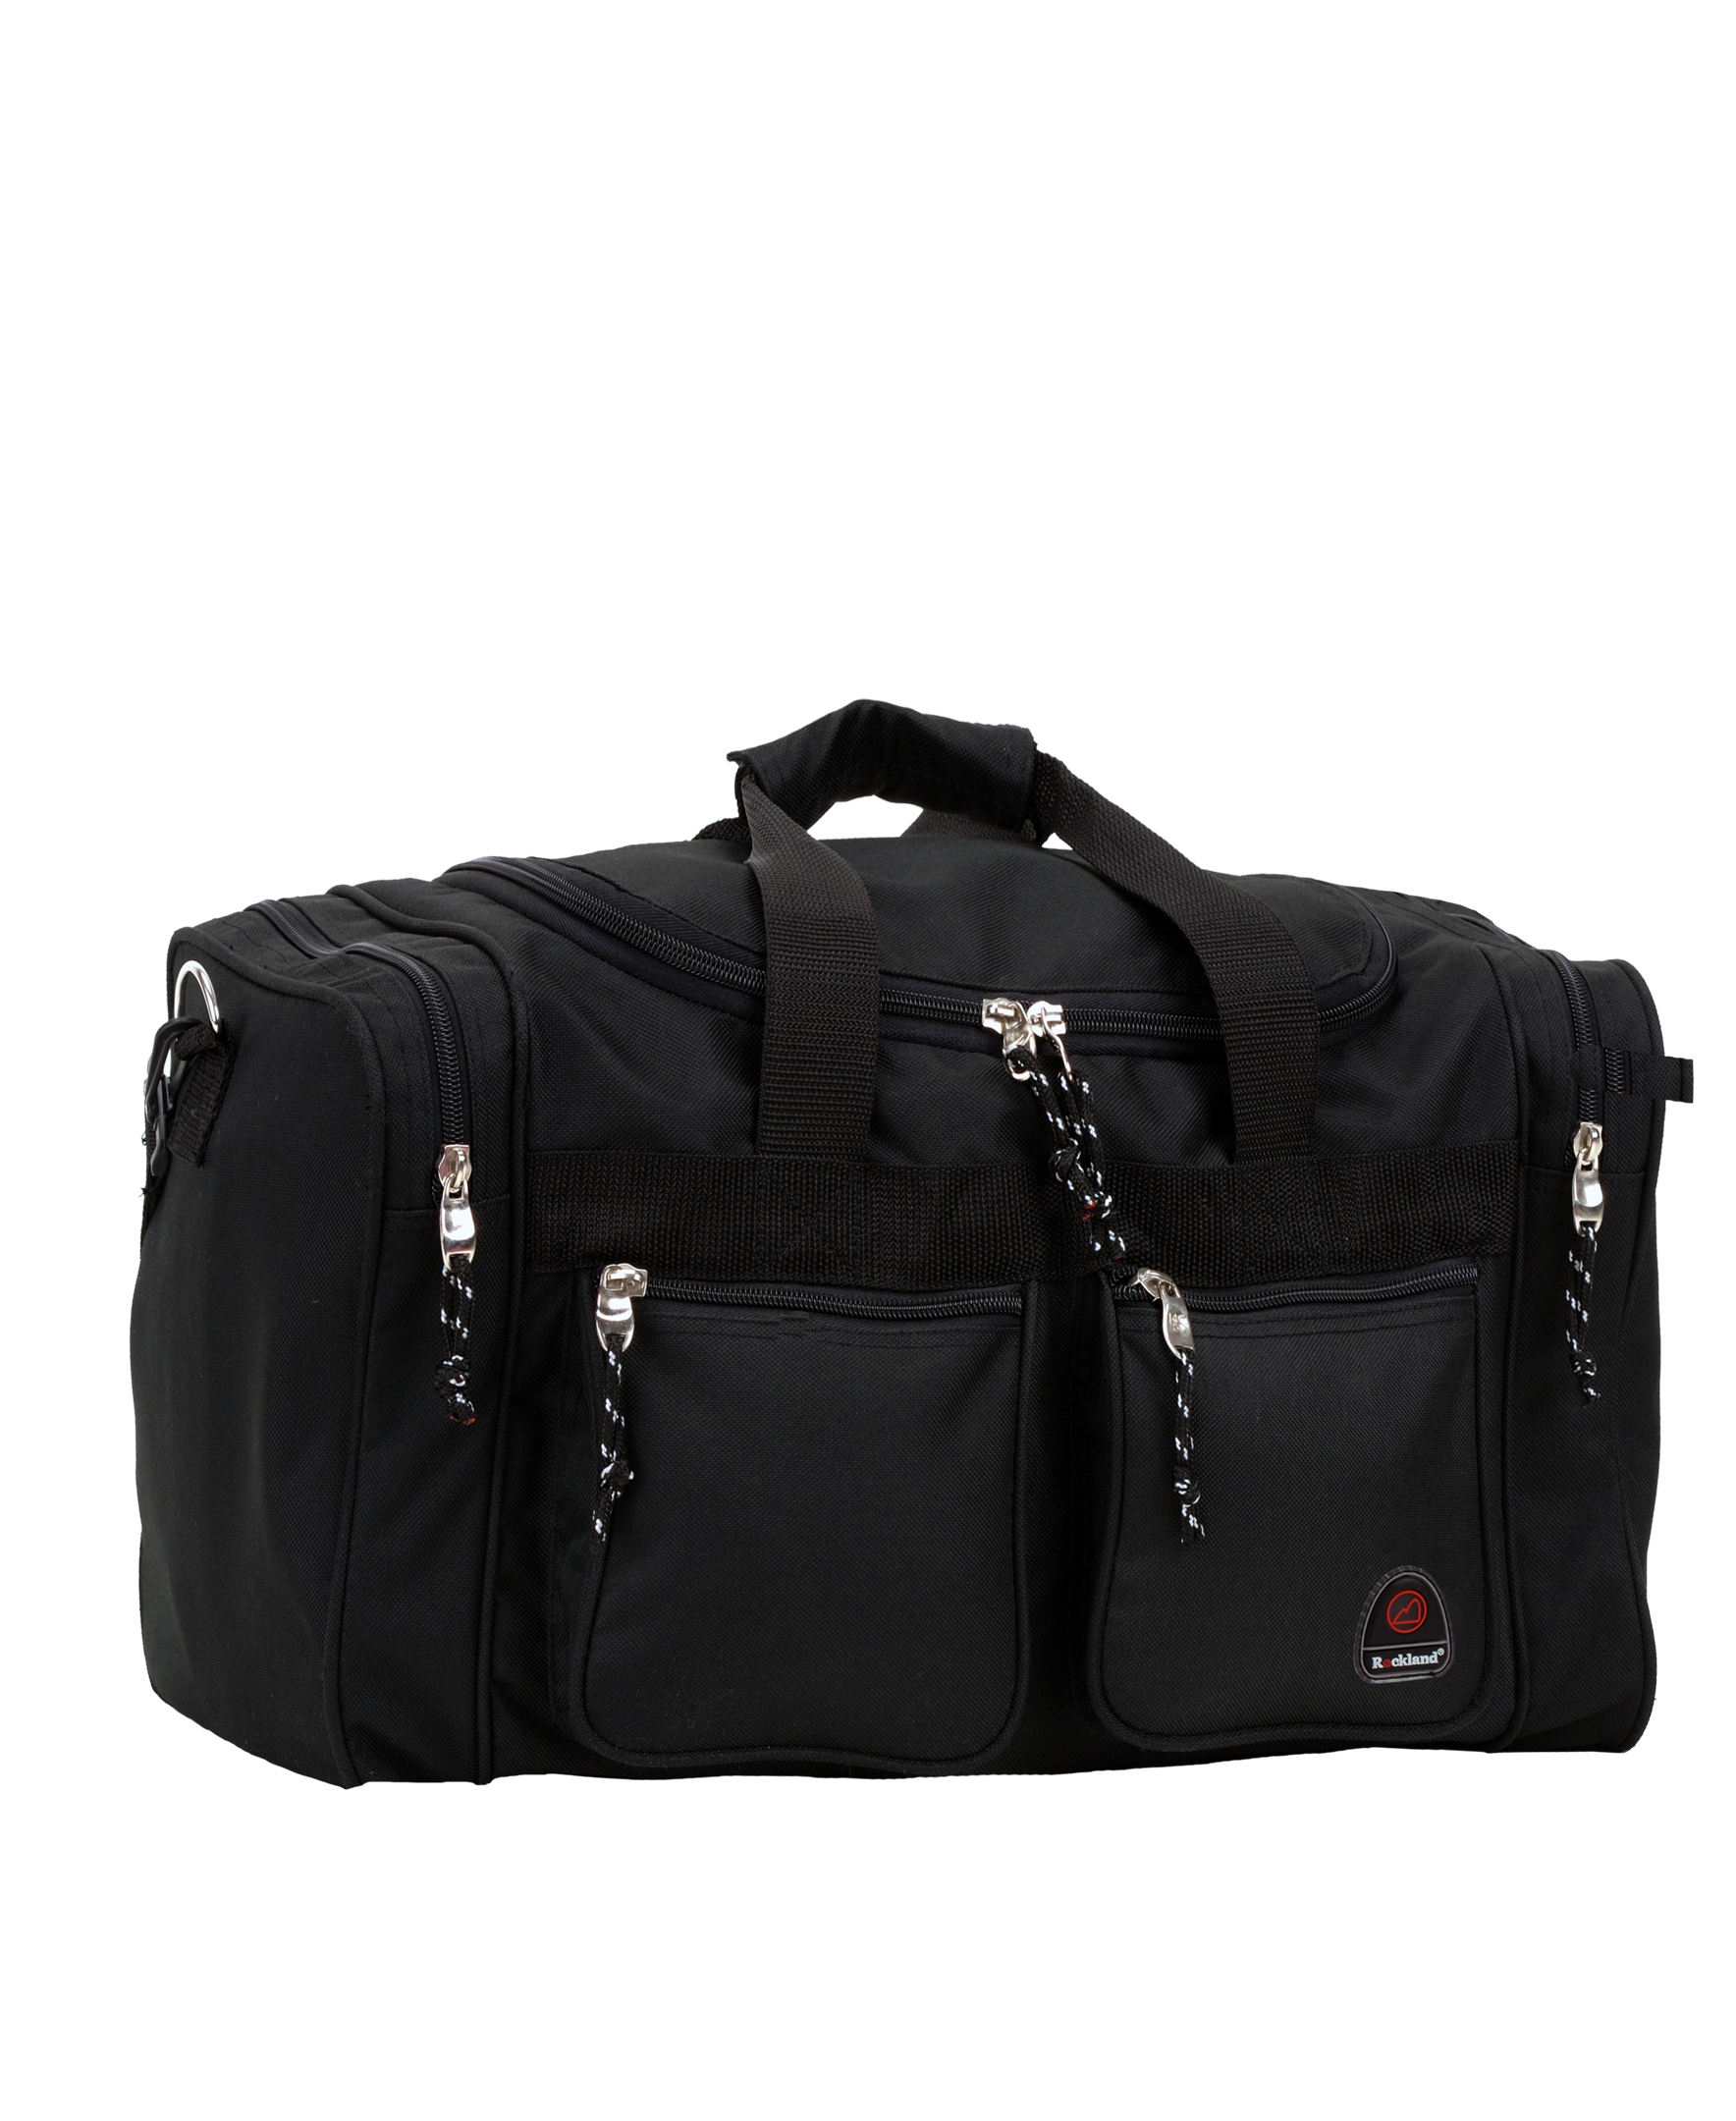 Black One Size Rockland Luggage 19 Inch Tote Bag